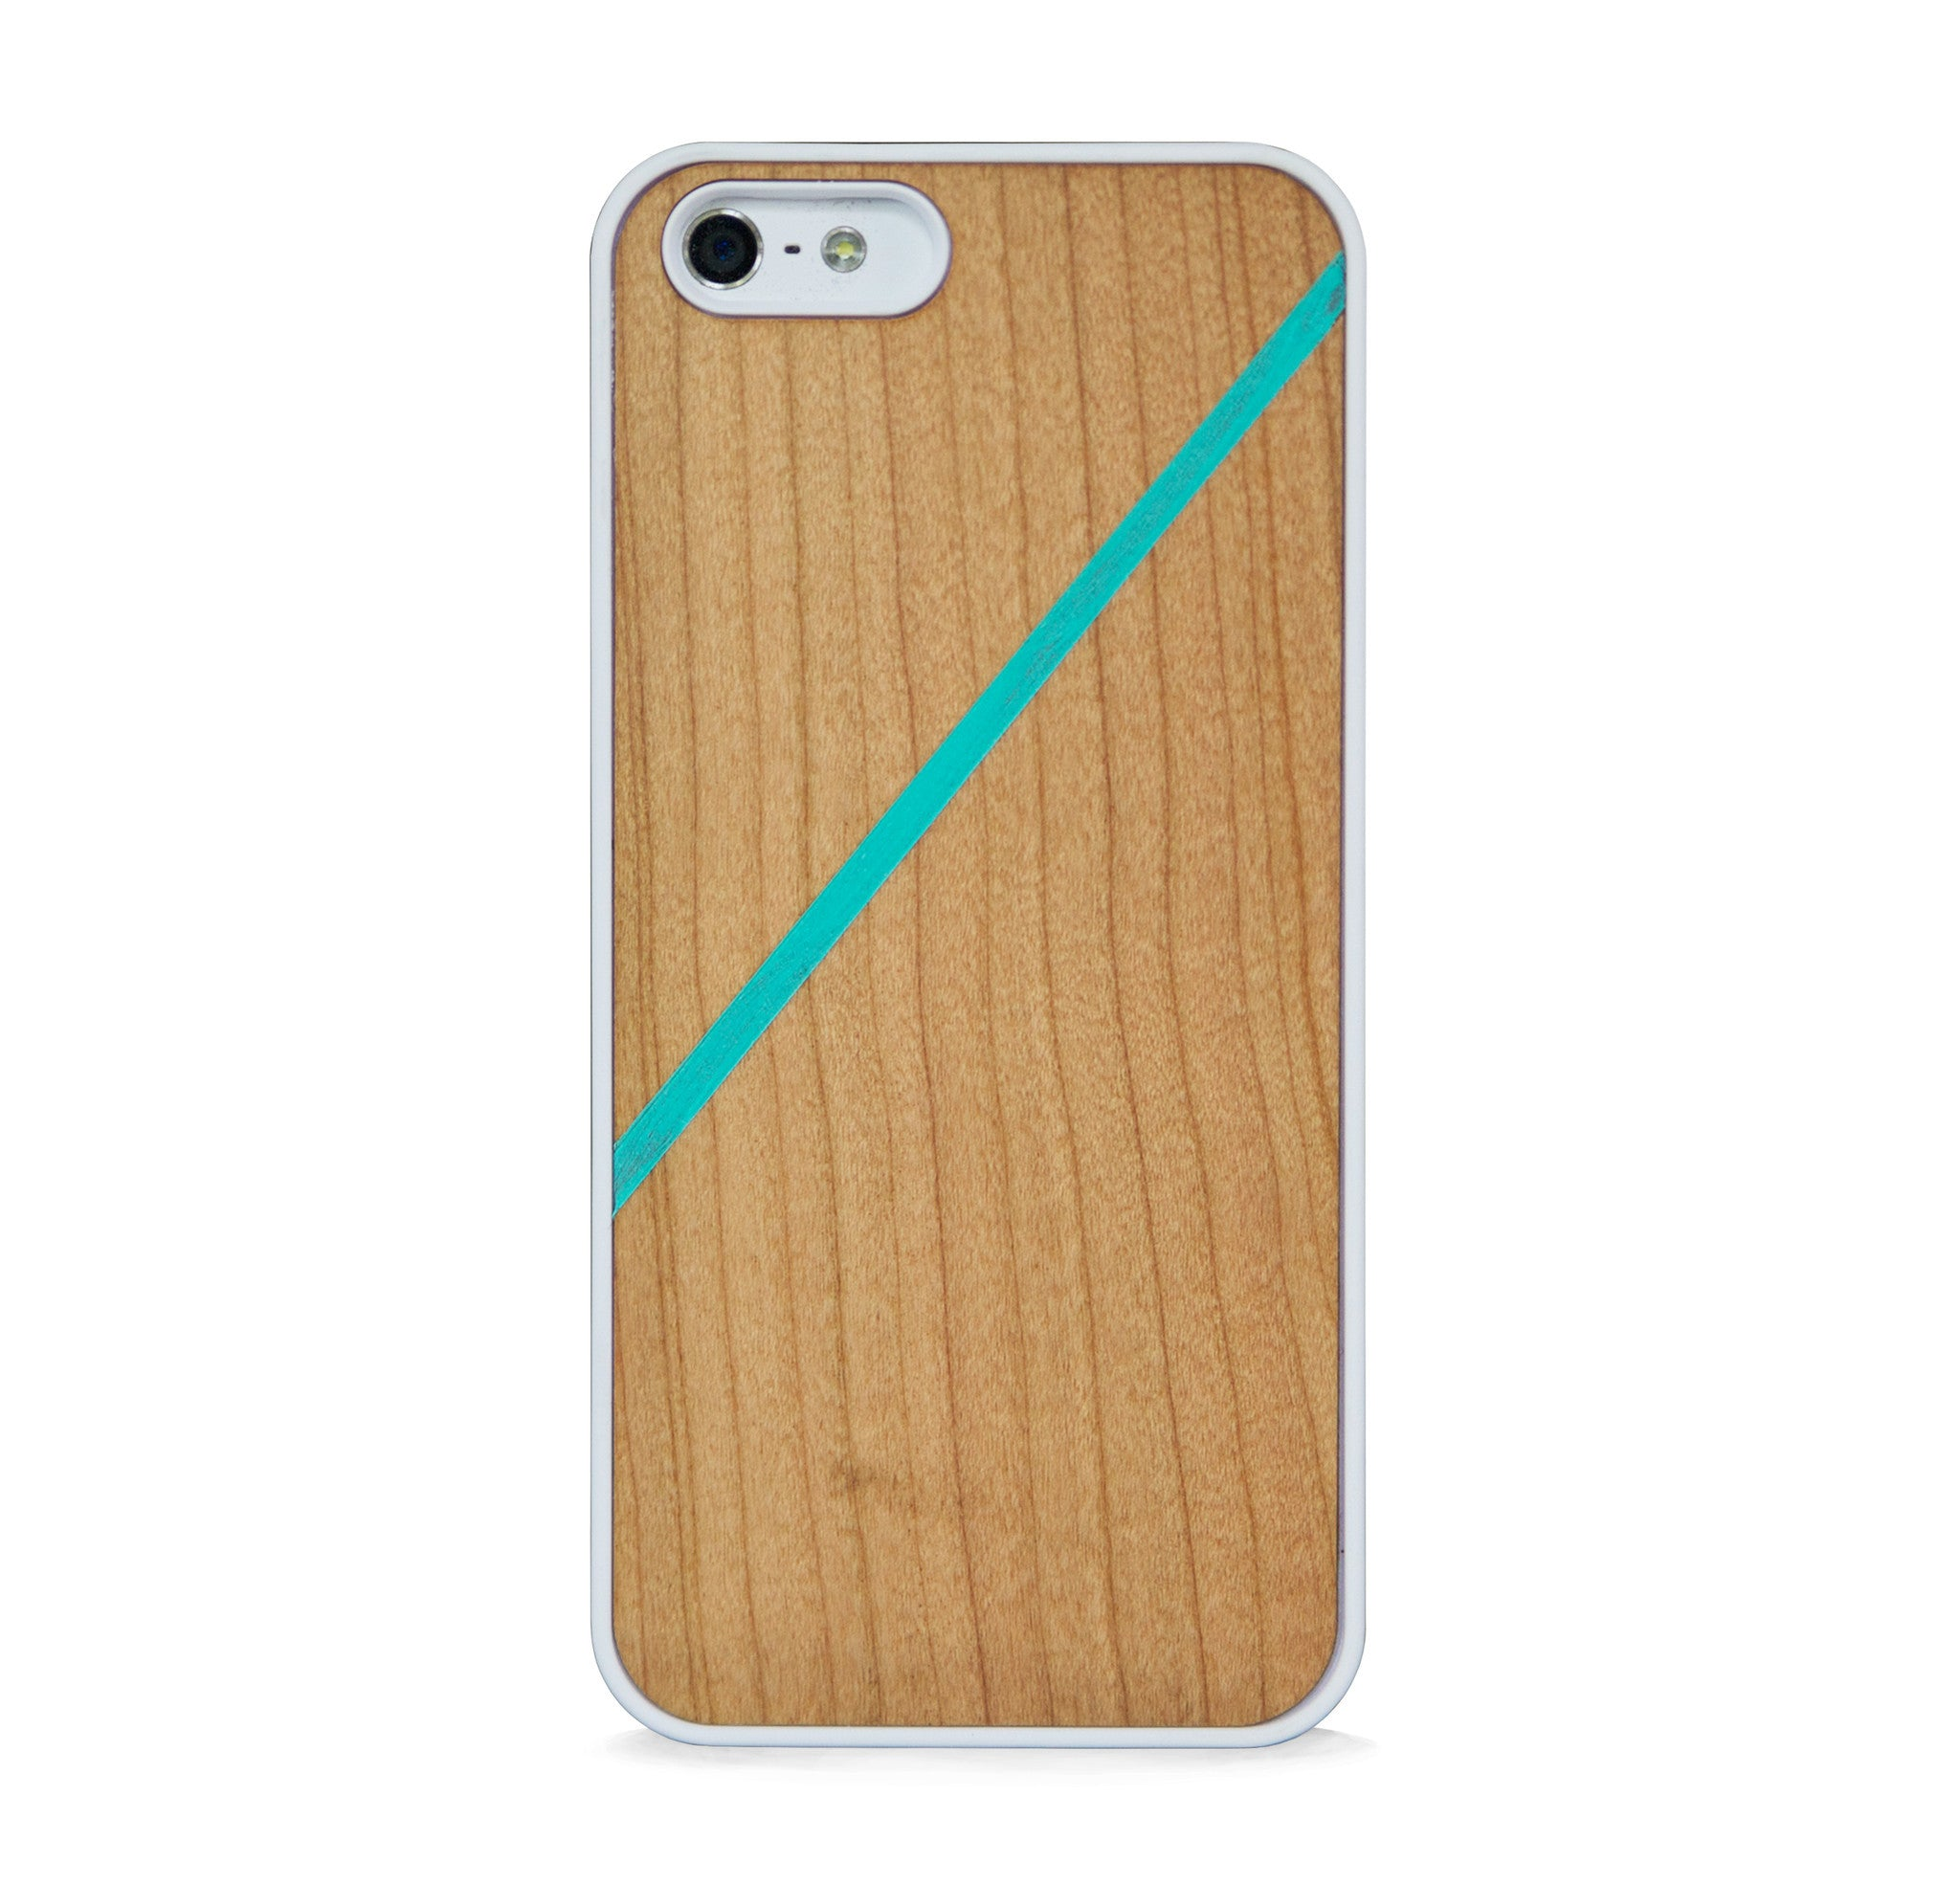 *WOOD CASE LINE COLOR BLOCK MINT FOR IPHONE 5/5s, IPHONE SE